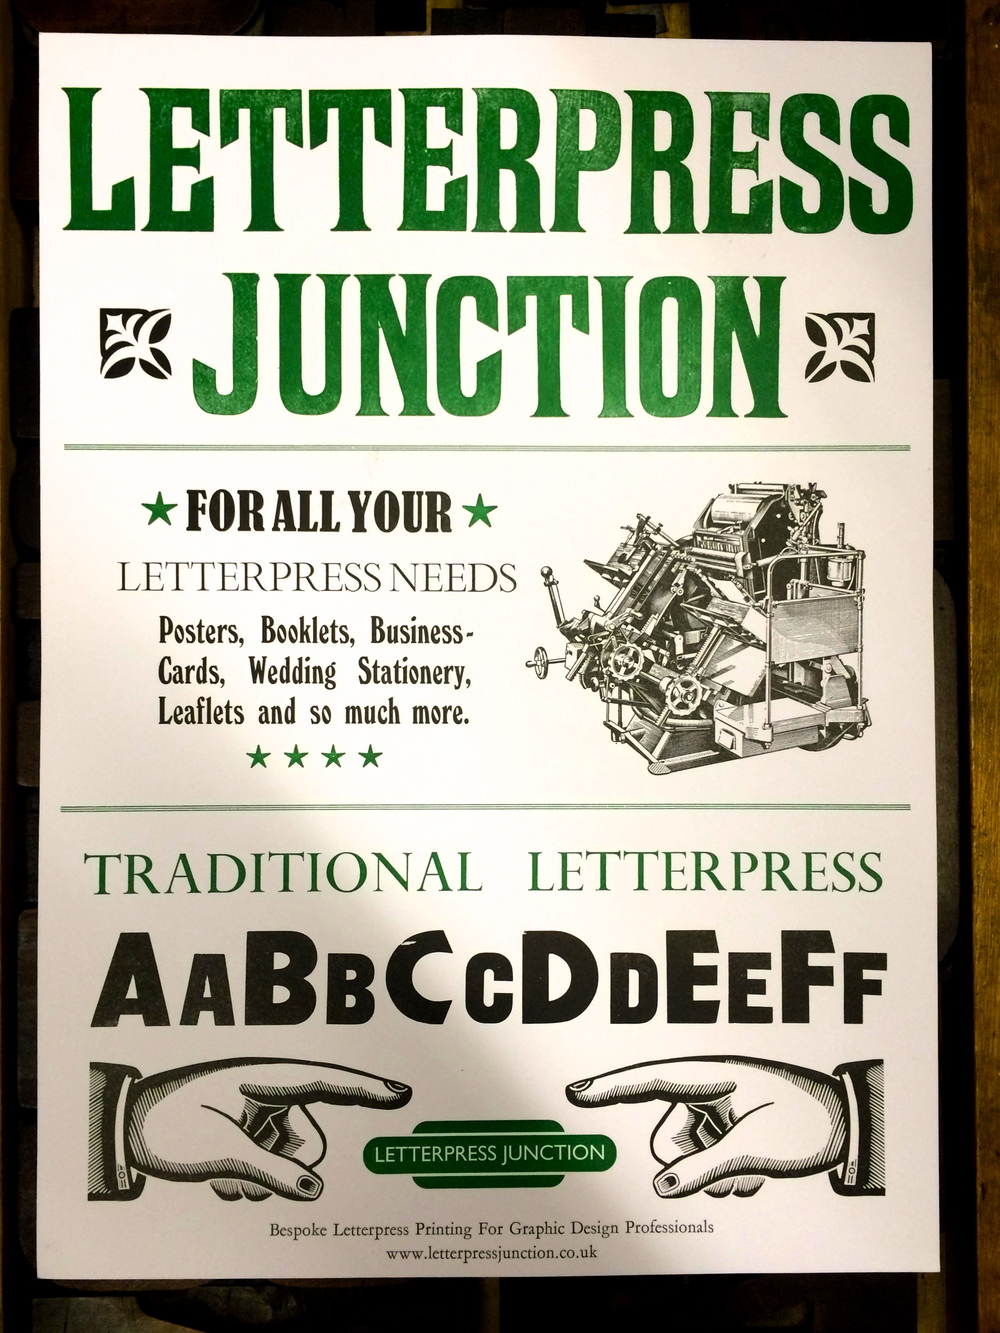 Letterpress Junction - Traditional Letterpress